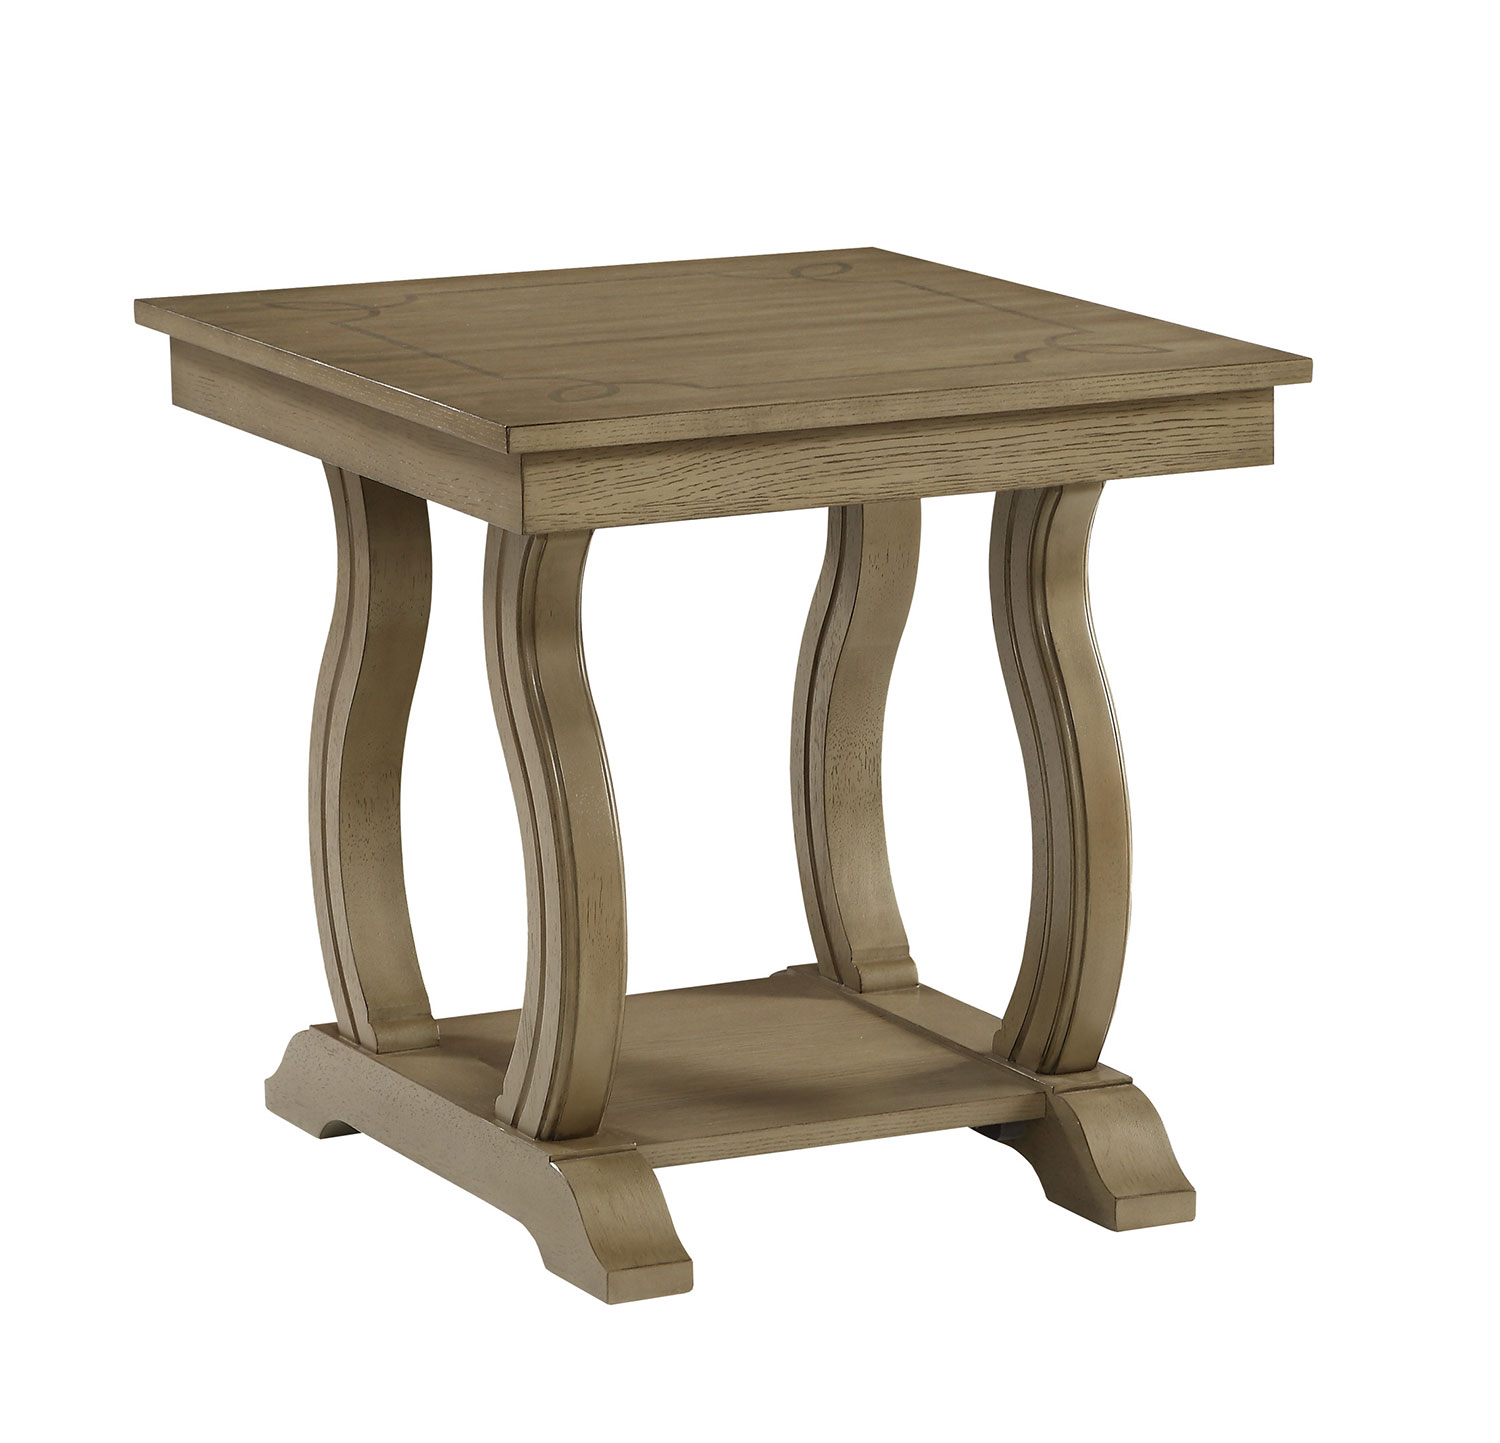 Homelegance Vermillion End Table - Bisque